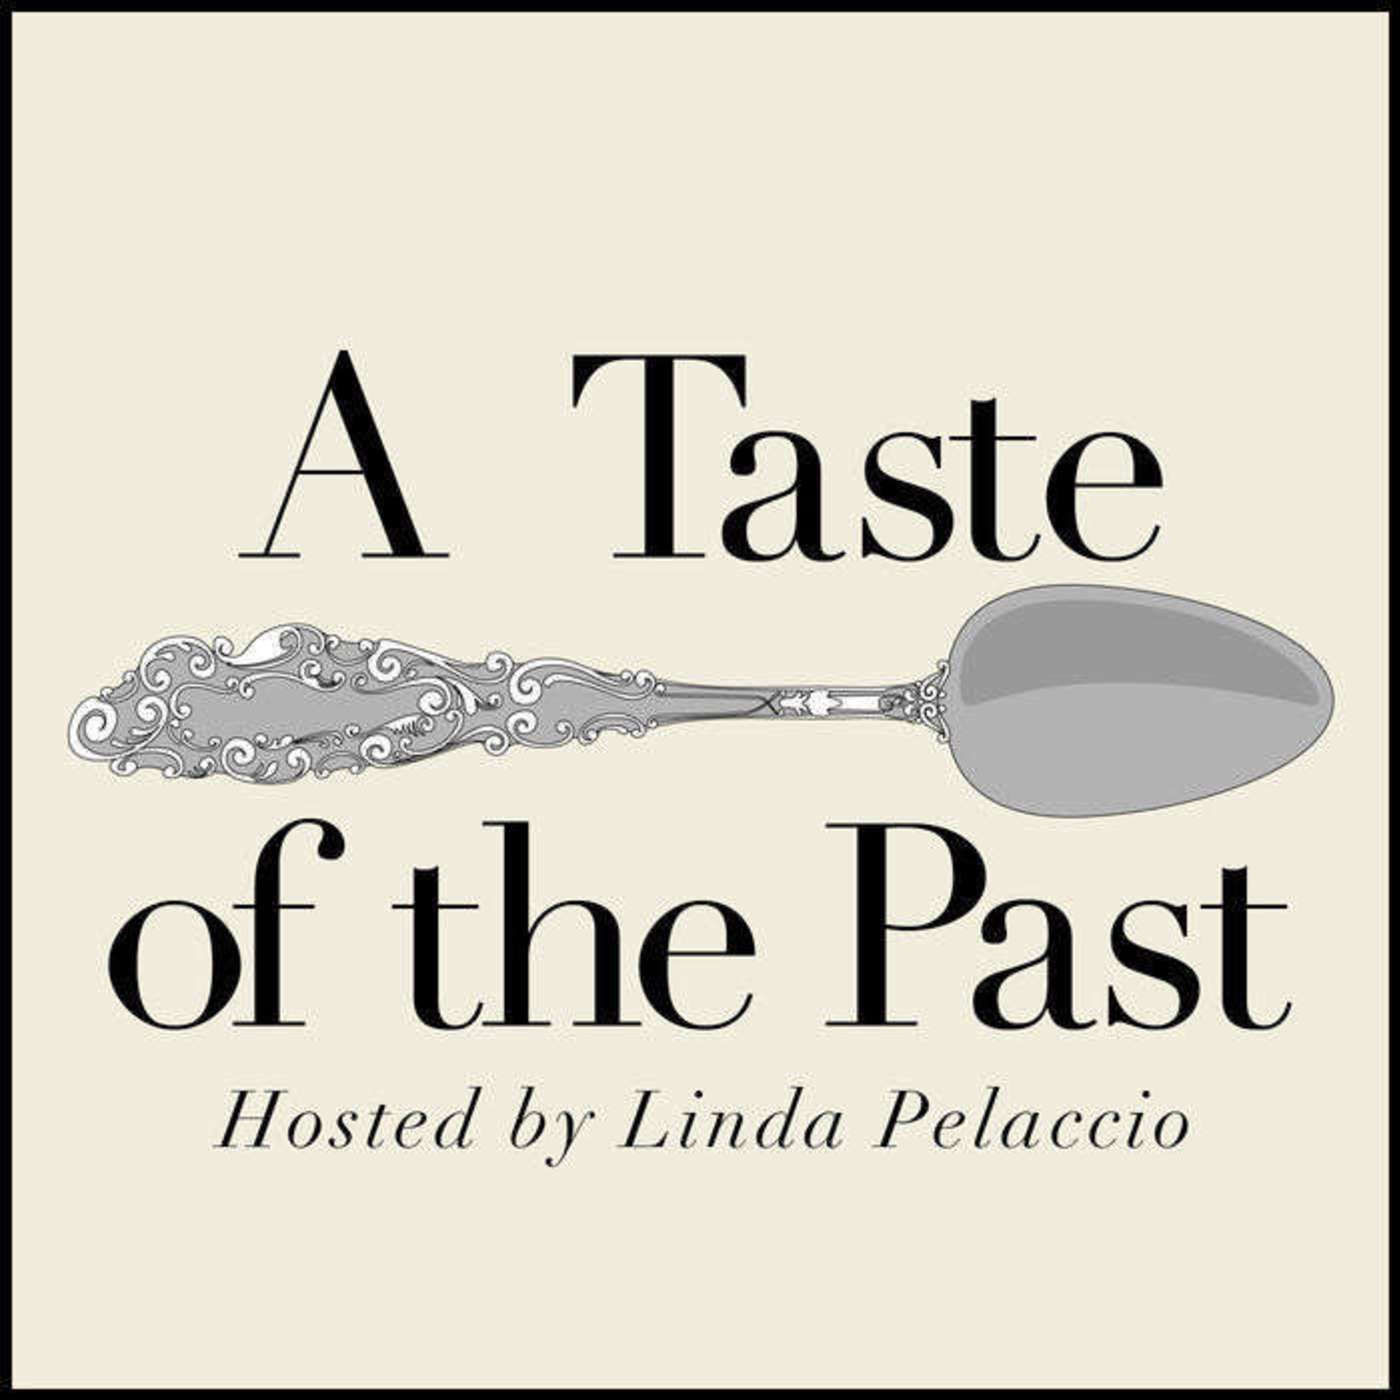 Episode 129: Farm To Table: Financial Pathways of Food